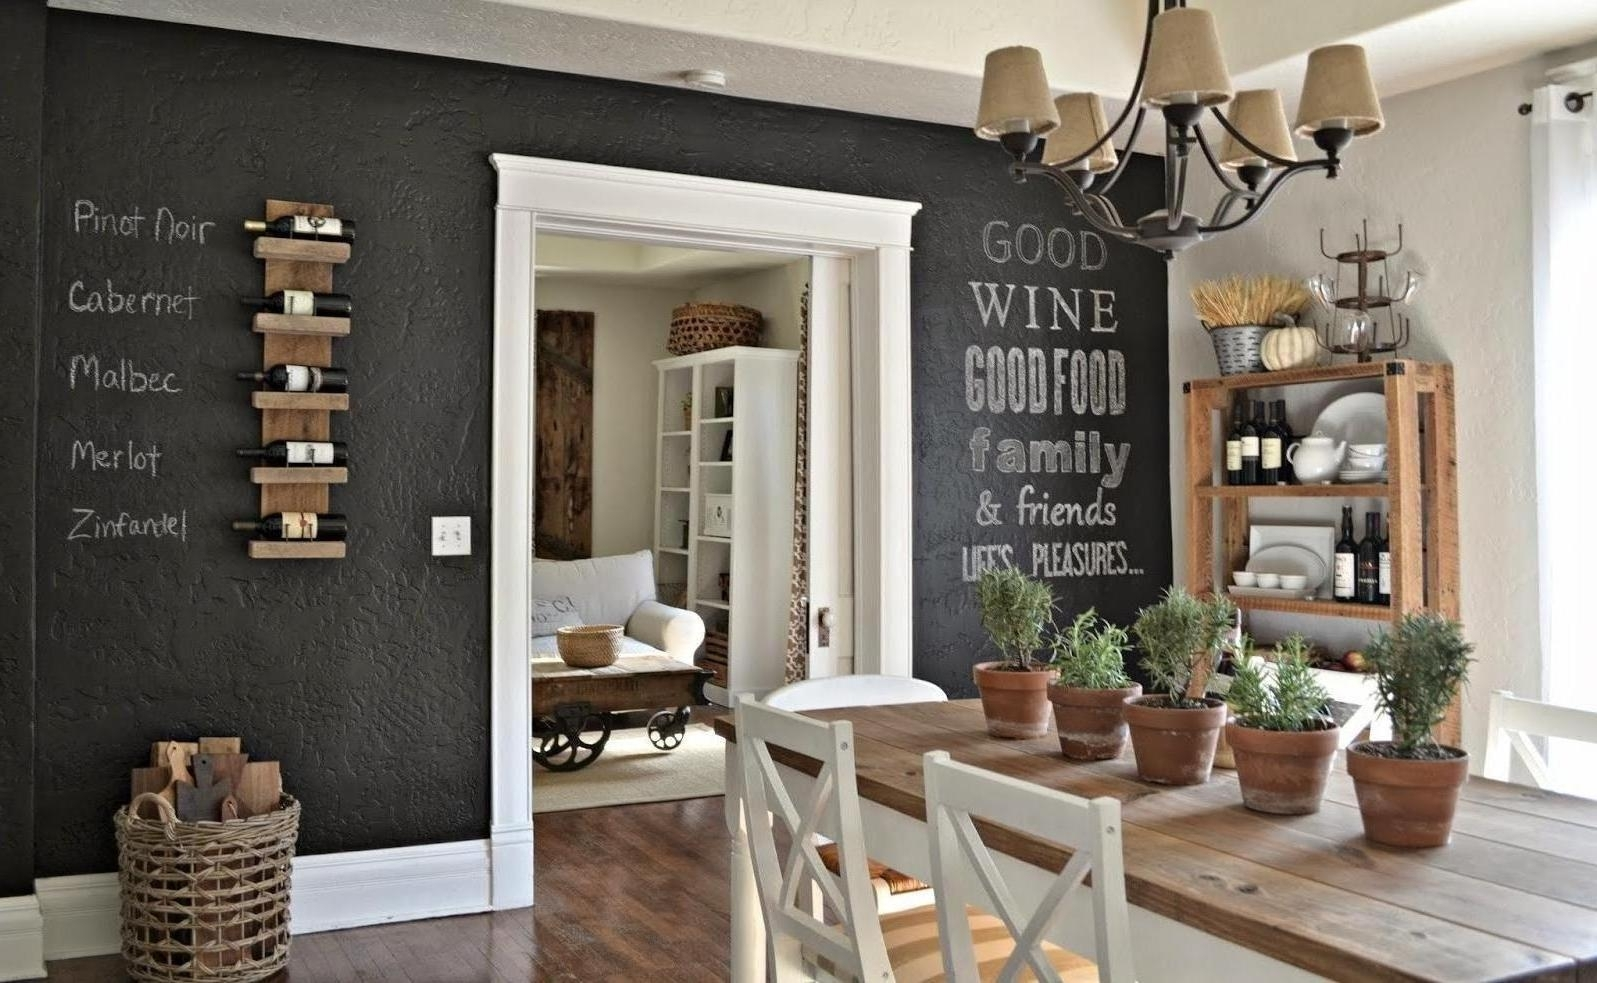 Creative Dining Room Wall Decor – Dining Room Wall Decor Concept With Most Recently Released Dining Room Wall Accents (View 2 of 15)